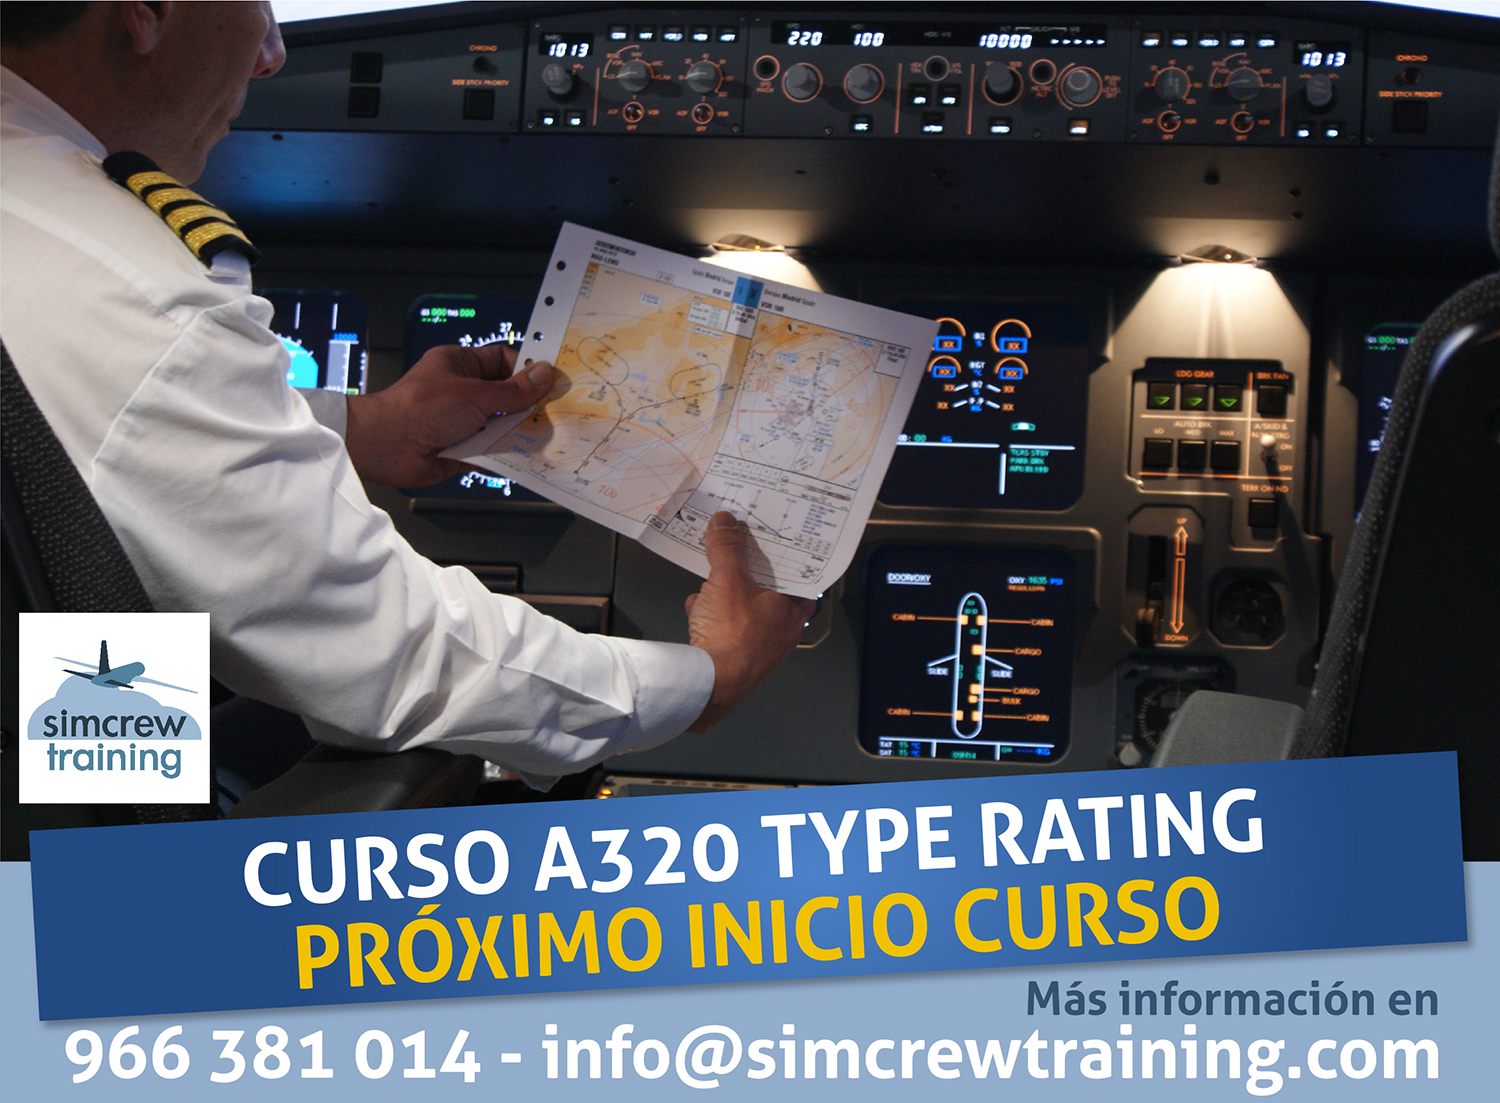 A320 Type Rating - Habilitación de Tipo A320 - Simcrew Training